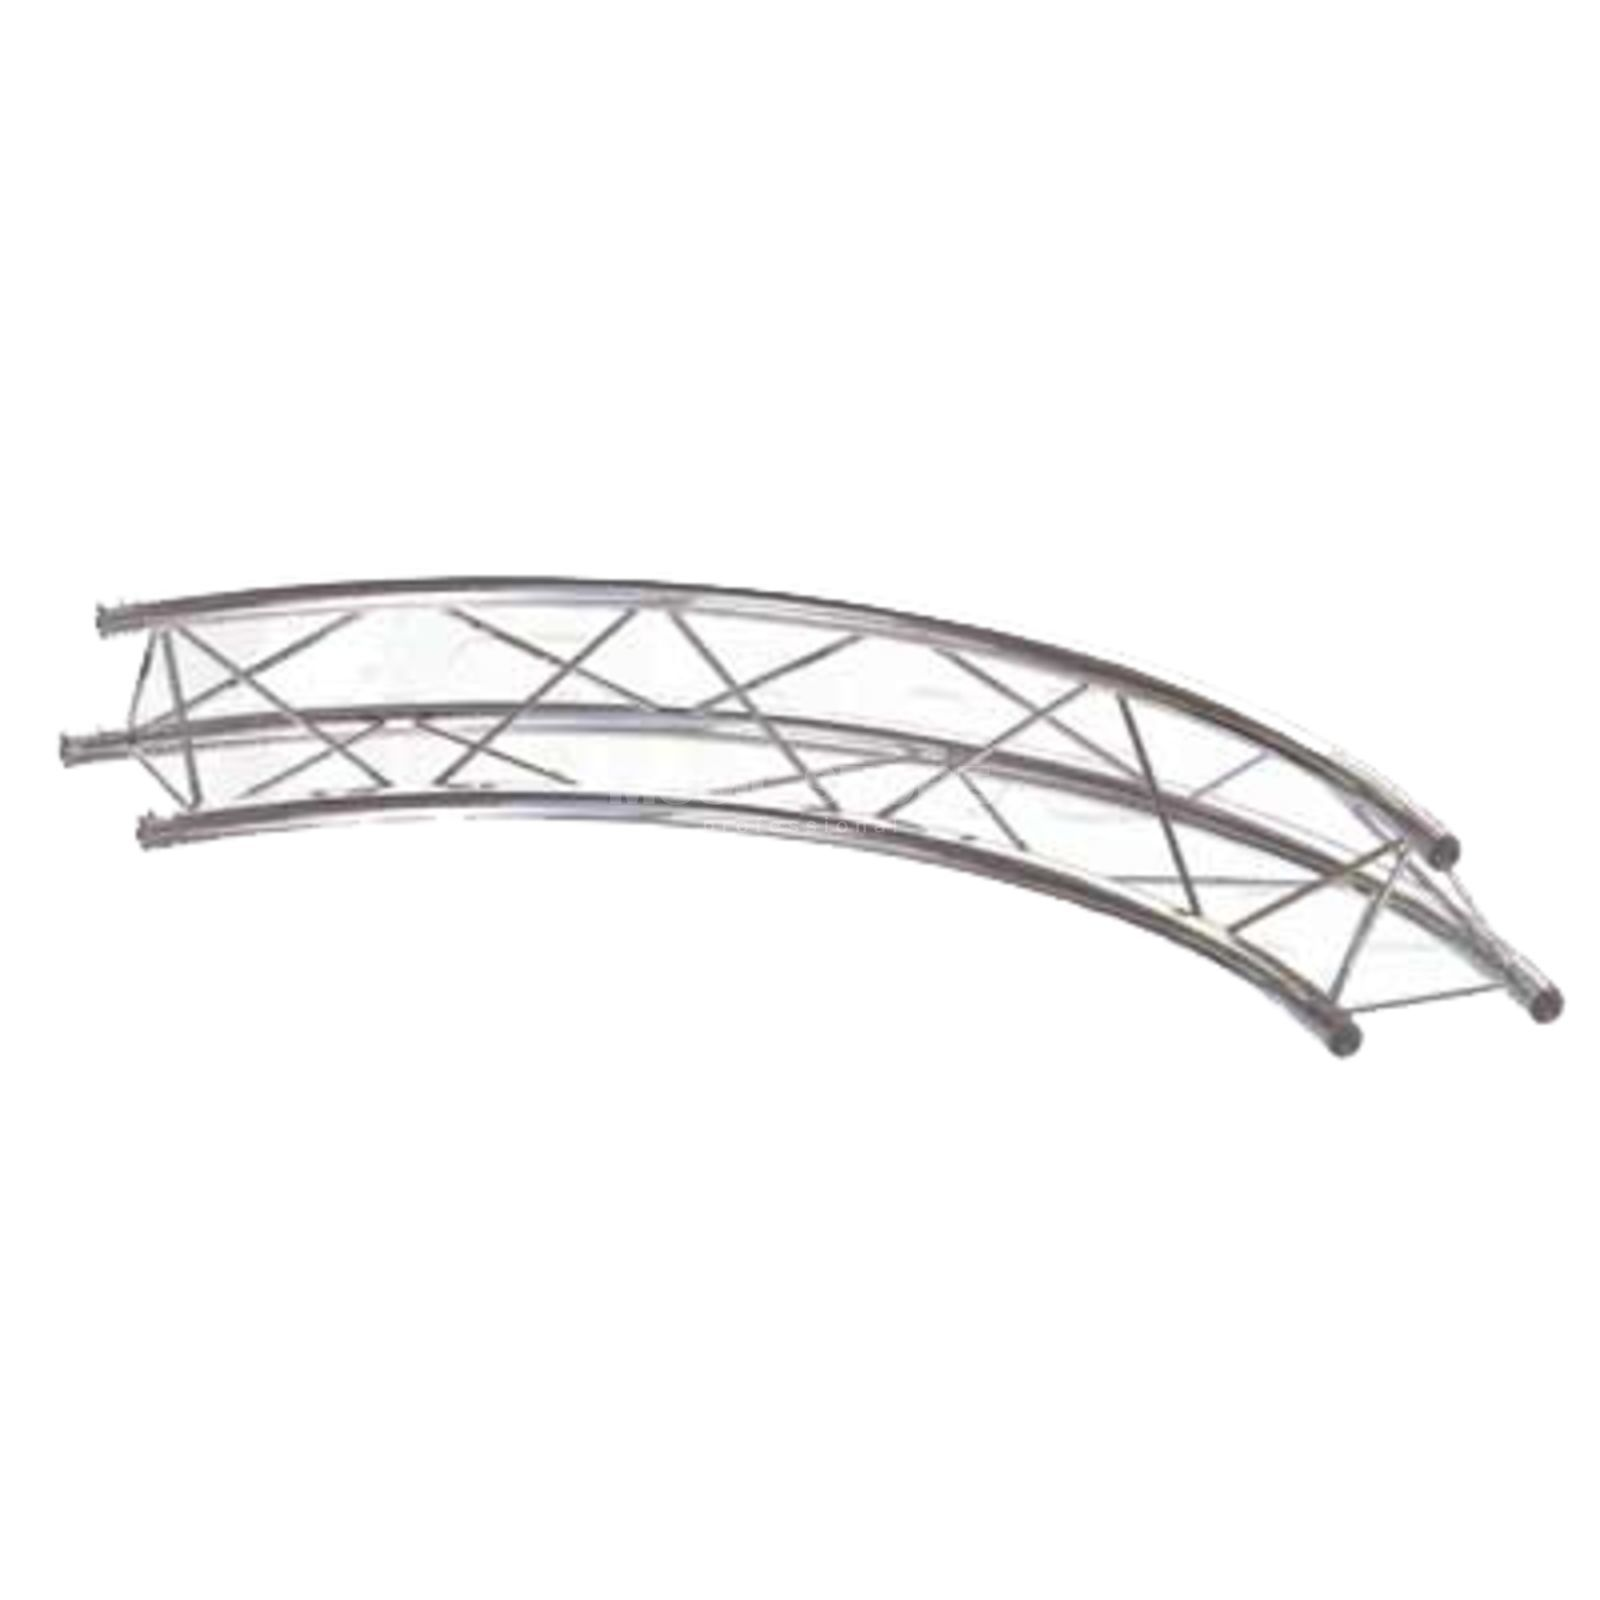 Global Truss F23 Decotruss Circular 90° 4m Produktbillede